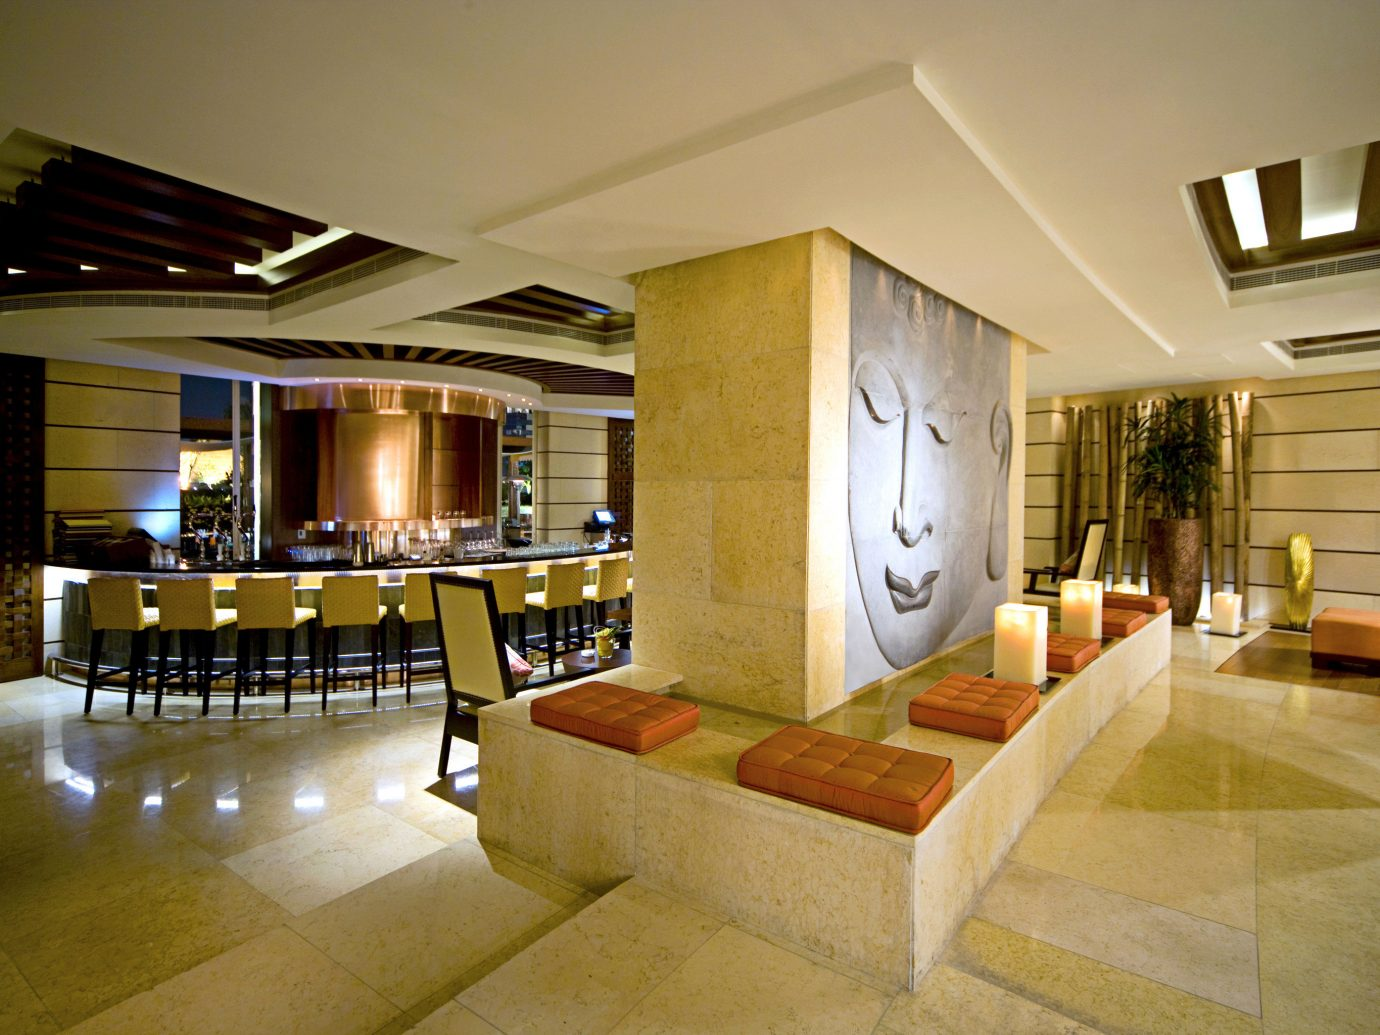 Bar Dining Drink Dubai Eat Hip Hotels Luxury Luxury Travel Middle East Modern indoor floor ceiling room Living wall property estate furniture home house Lobby interior design condominium real estate living room Design mansion Villa area wood